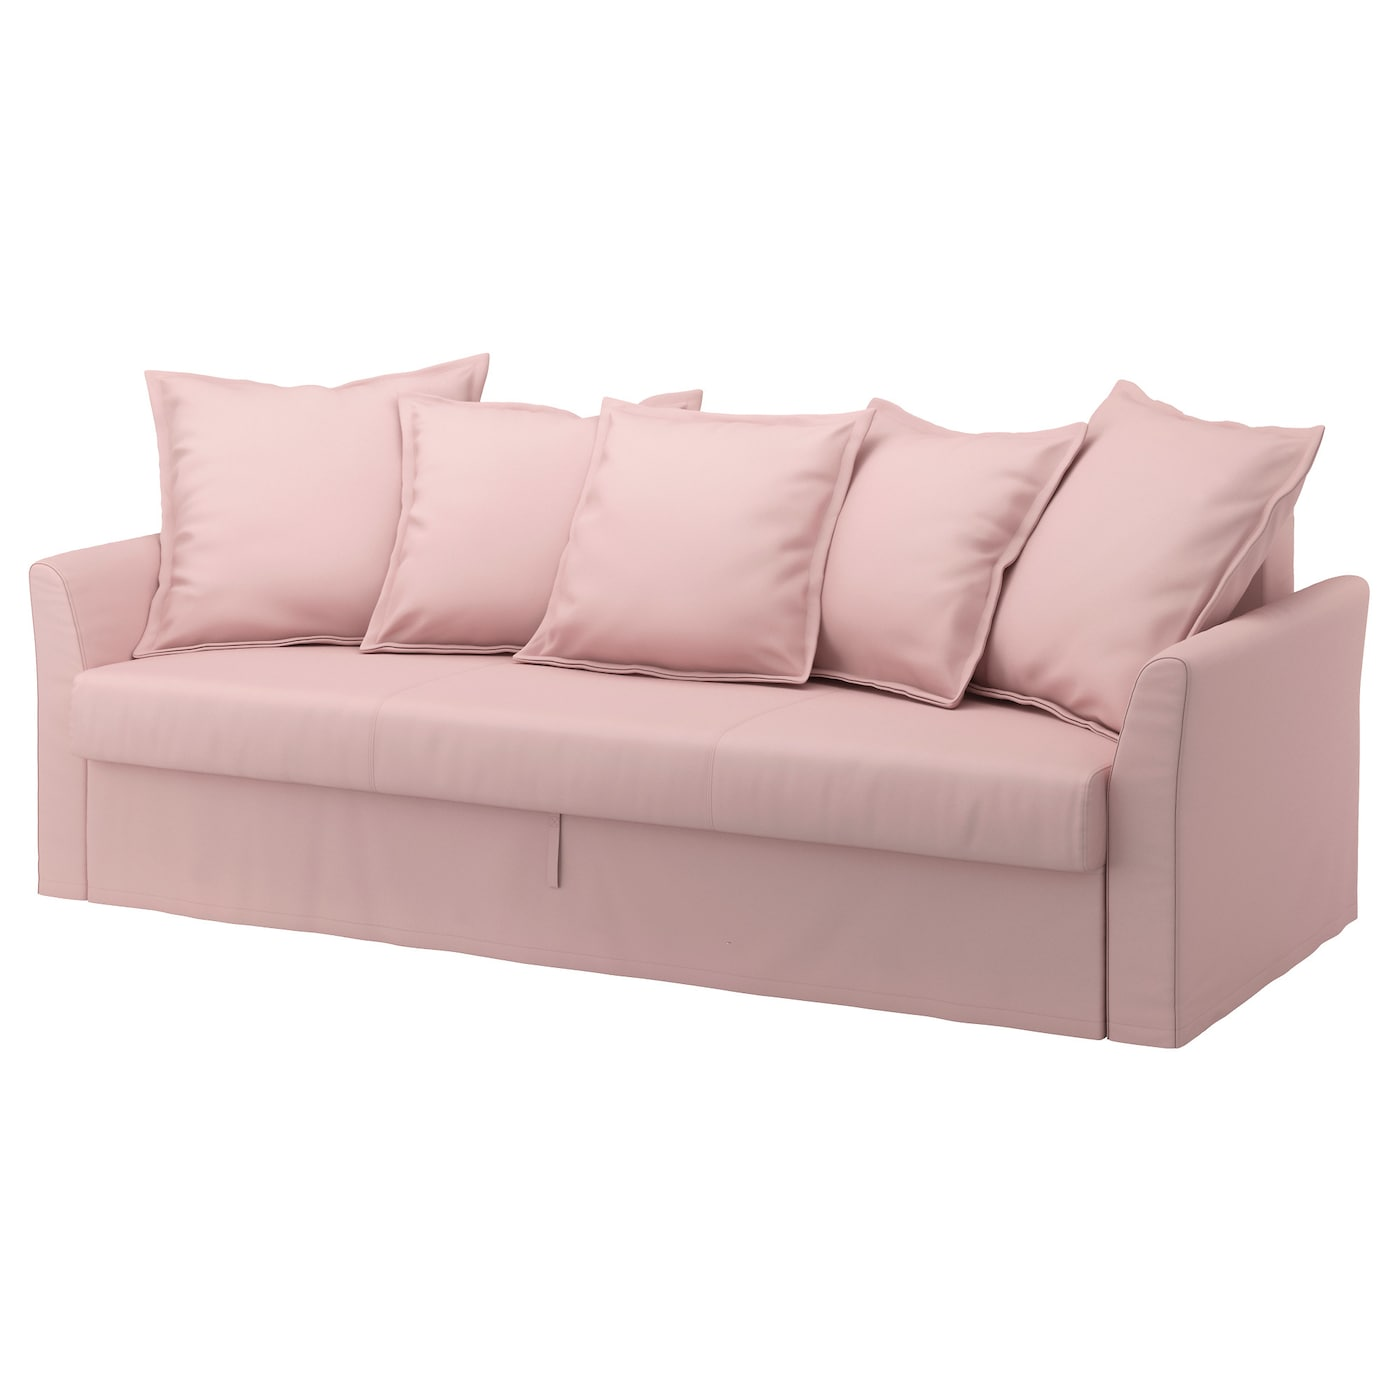 Holmsund three seat sofa bed ransta light pink ikea for Sofa cama con almacenaje